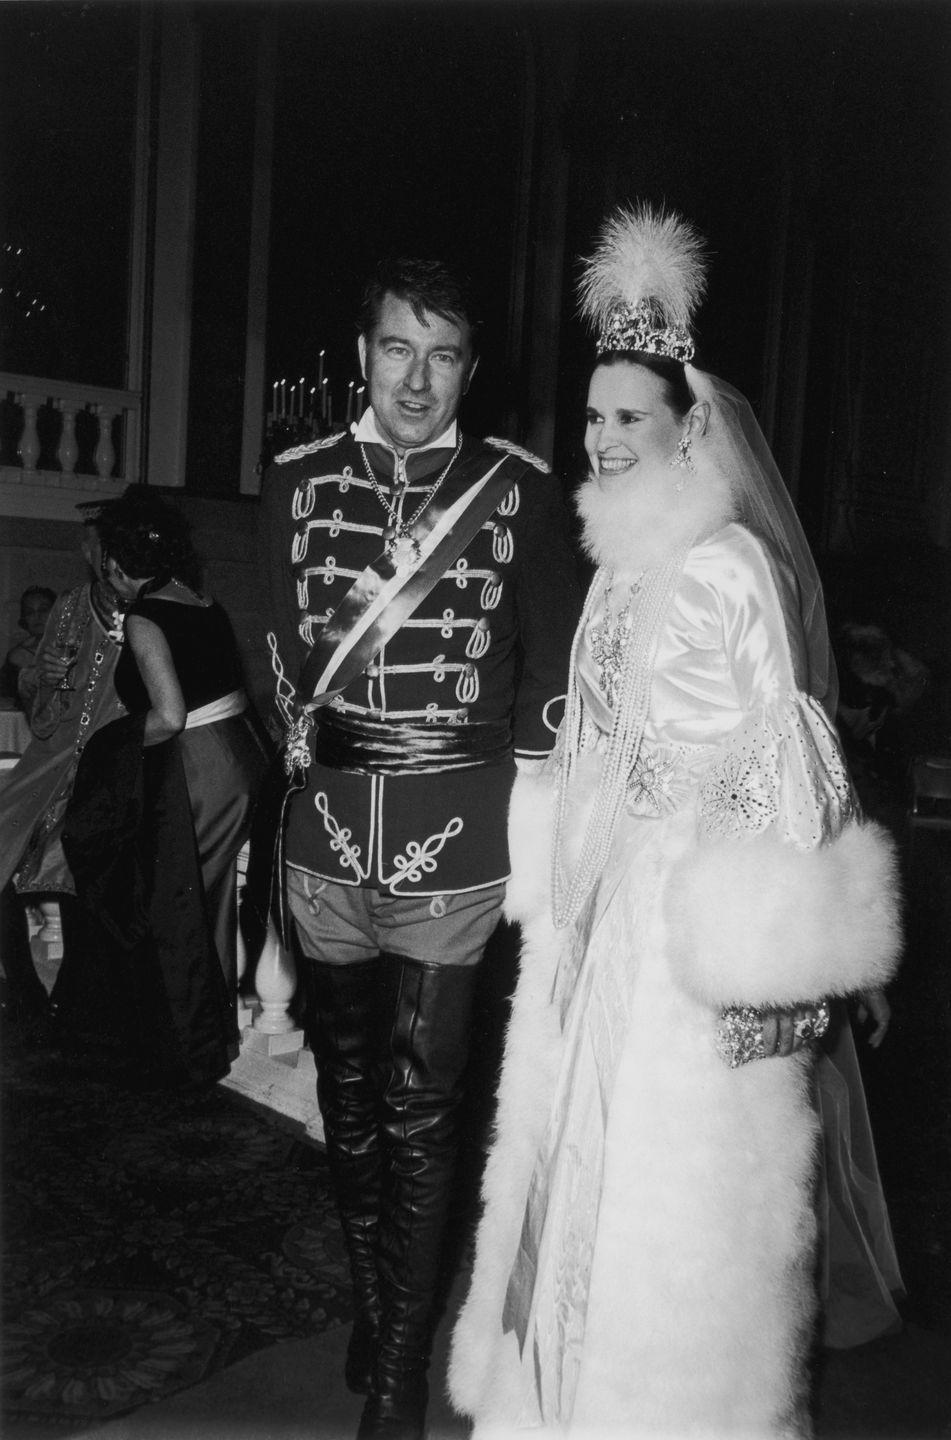 <p>Vanderbilt with her fourth husband, actor and editor Wyatt Cooper, at a ball in the Plaza Hotel. The theme: Winter Palace at St. Petersburg during the Romanov Dynasty.</p>